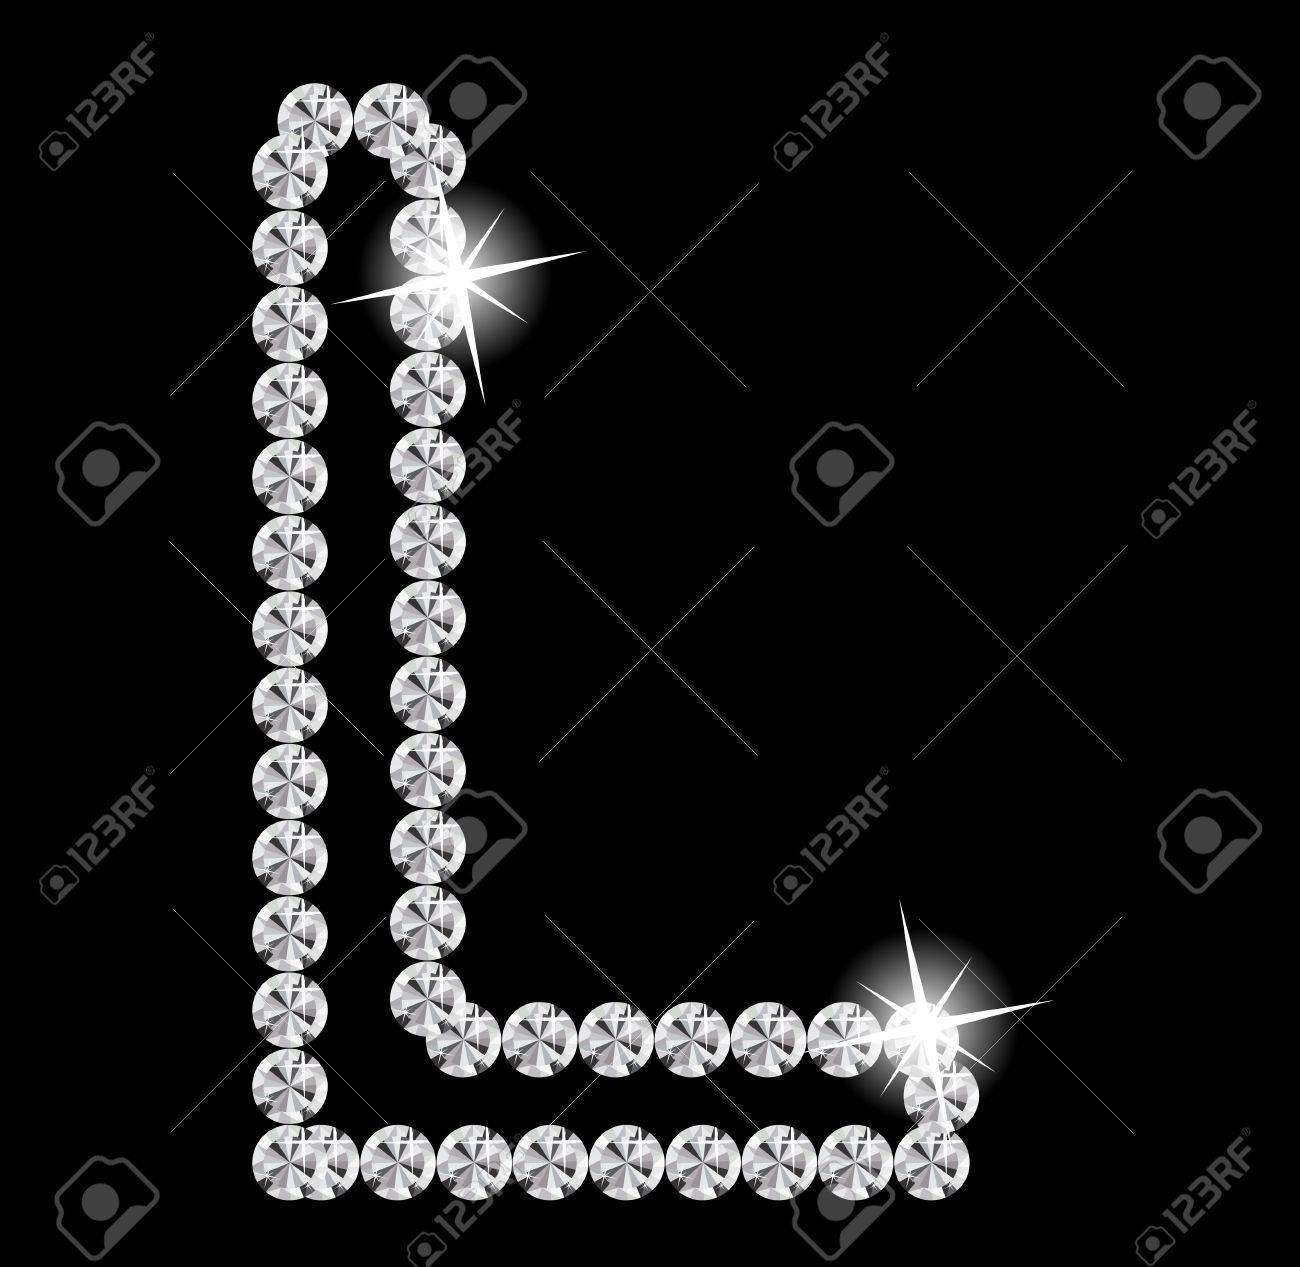 Diamond Alphabet vector illustration Stock Vector - 19929351